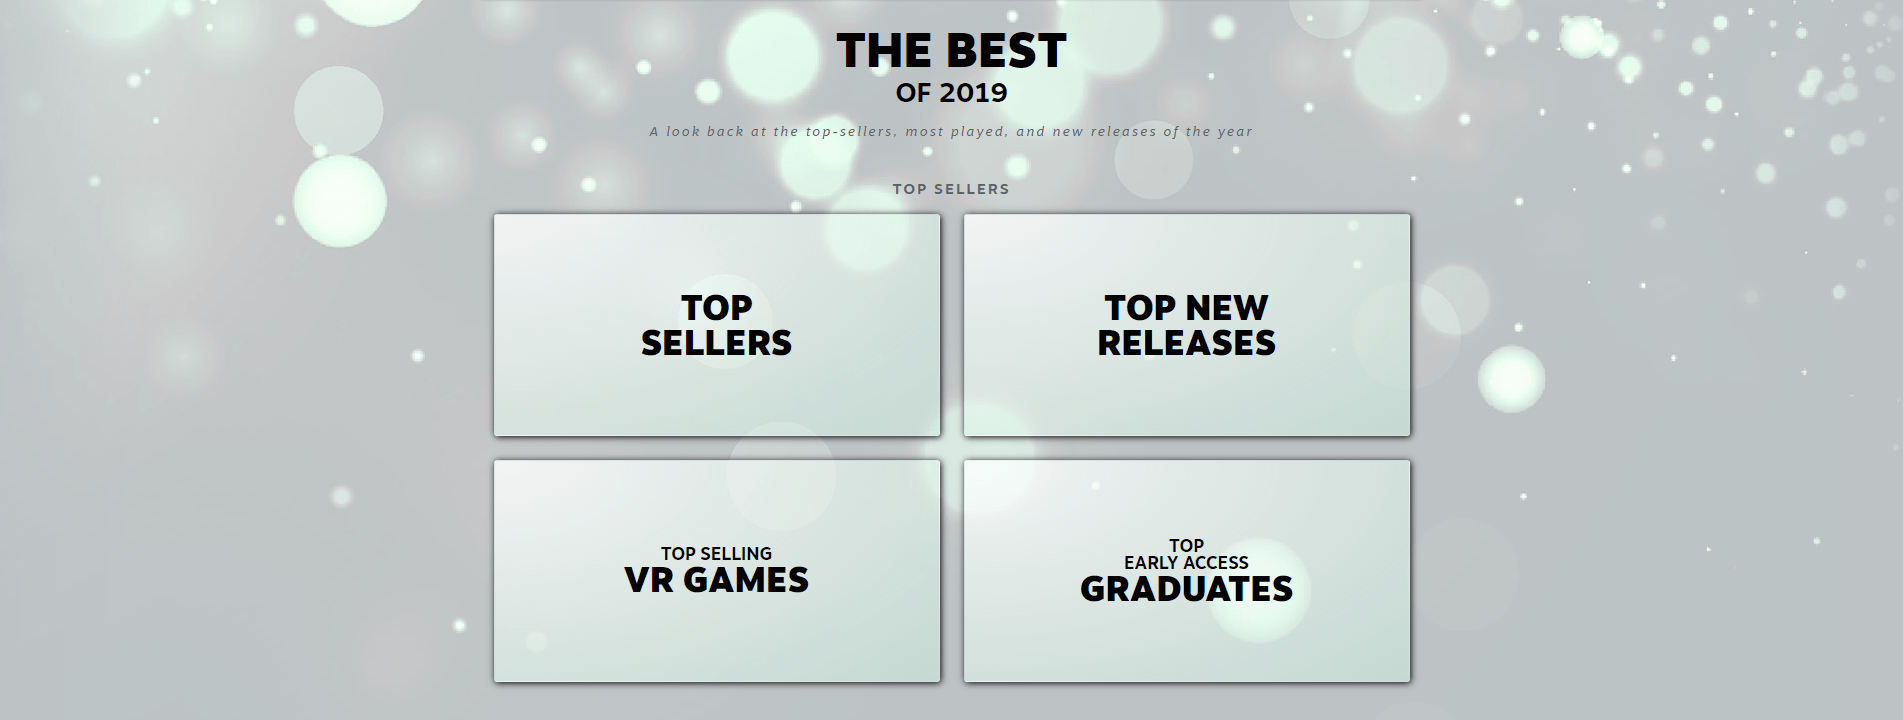 Steam Announces The Best Of 2019 Early Access Grads With Twelve Overall Winners